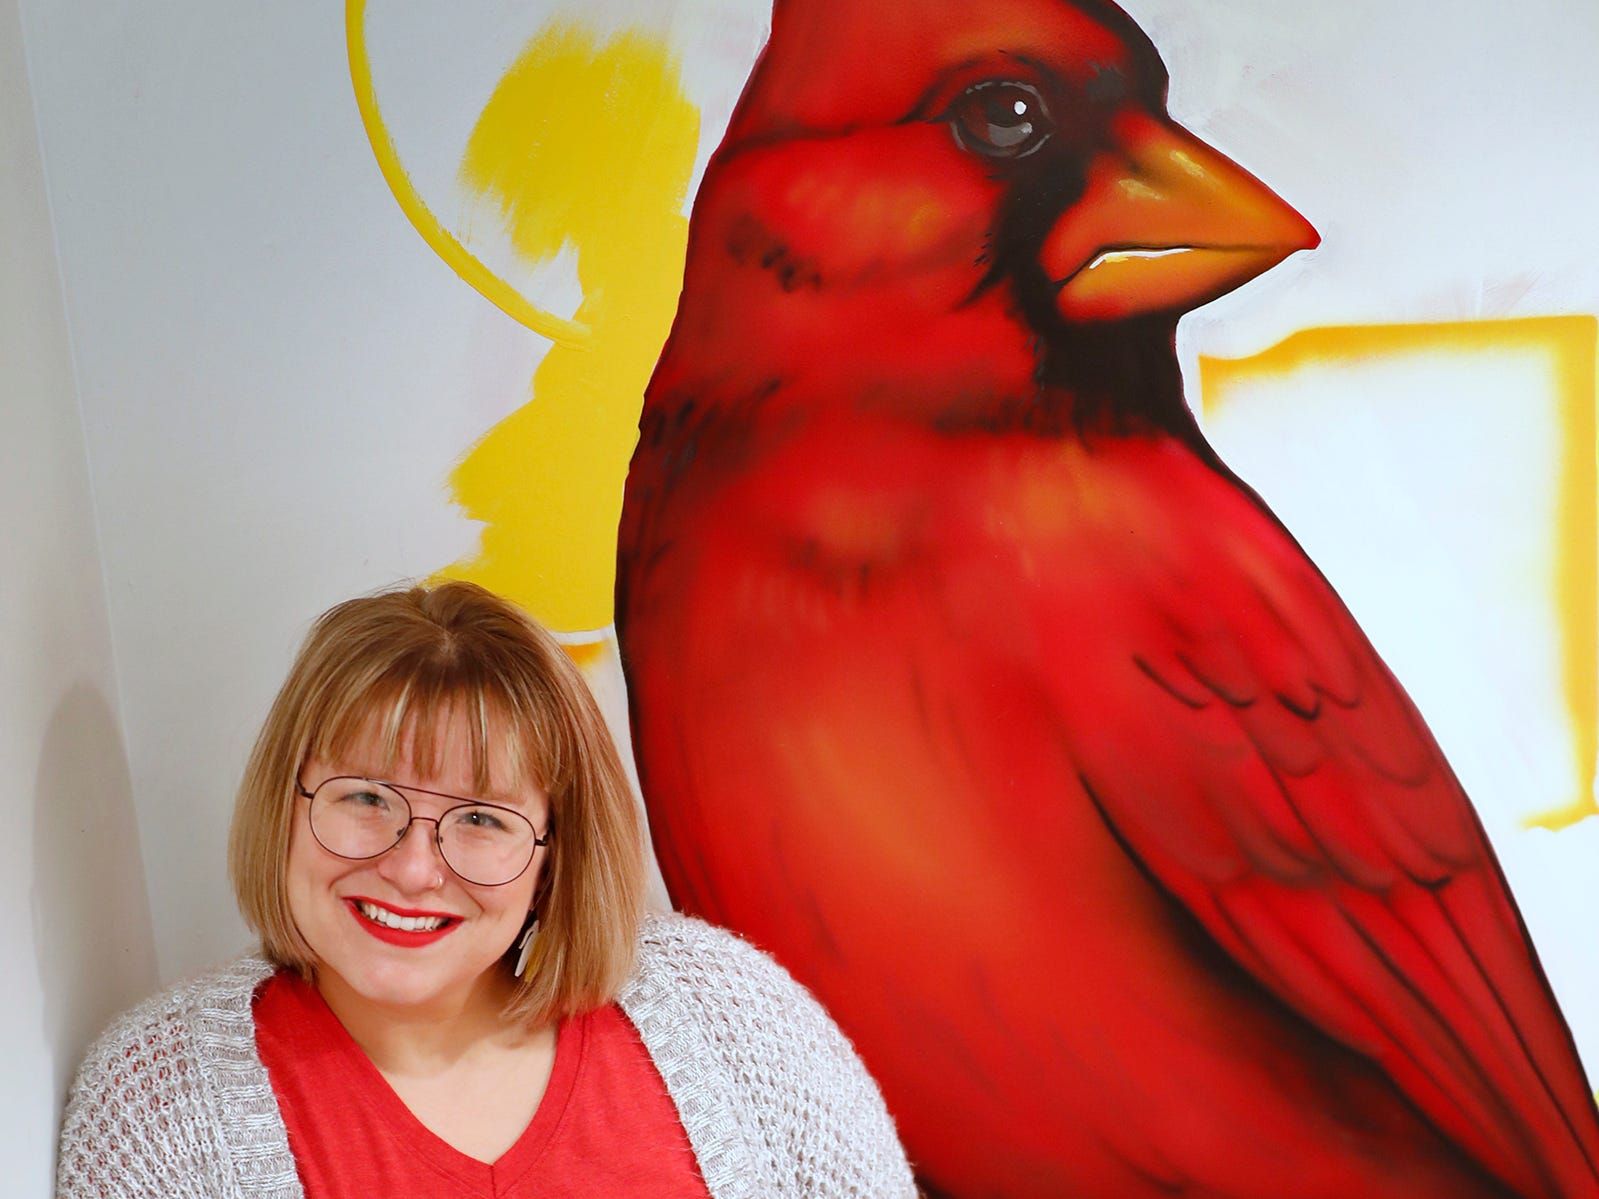 AirBnb owner Felicia Kiesel loves Indianapolis and uses items throughout the rental that remember the city, at 804 N. Keystone Ave., Monday, Dec. 3, 2018, including this mural with the state bird, right, the cardinal, and flower, the peony.